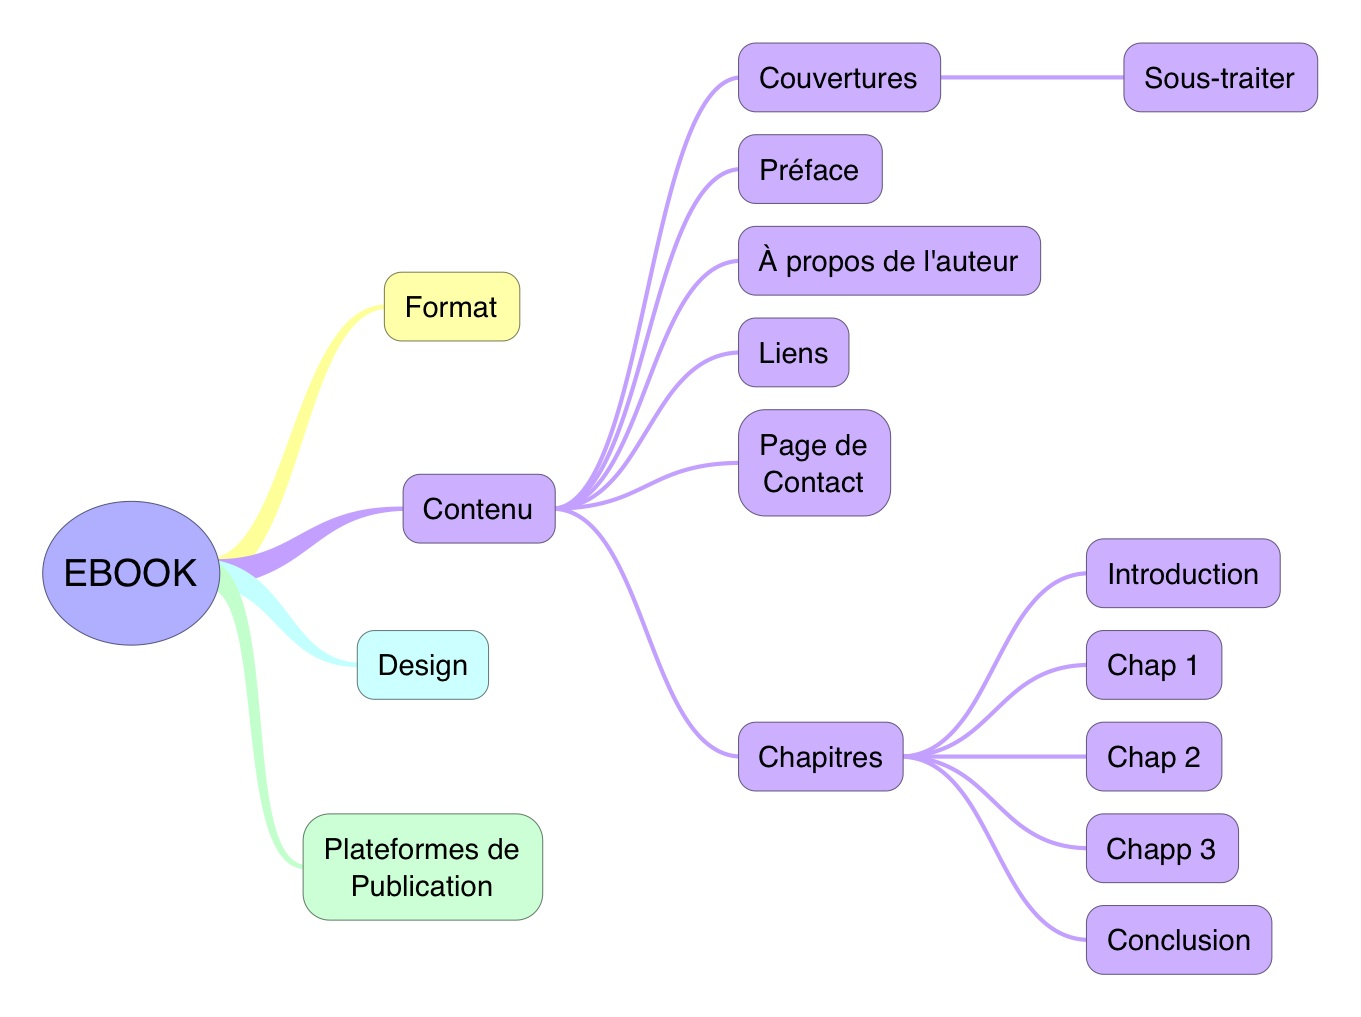 EBOOK mind map